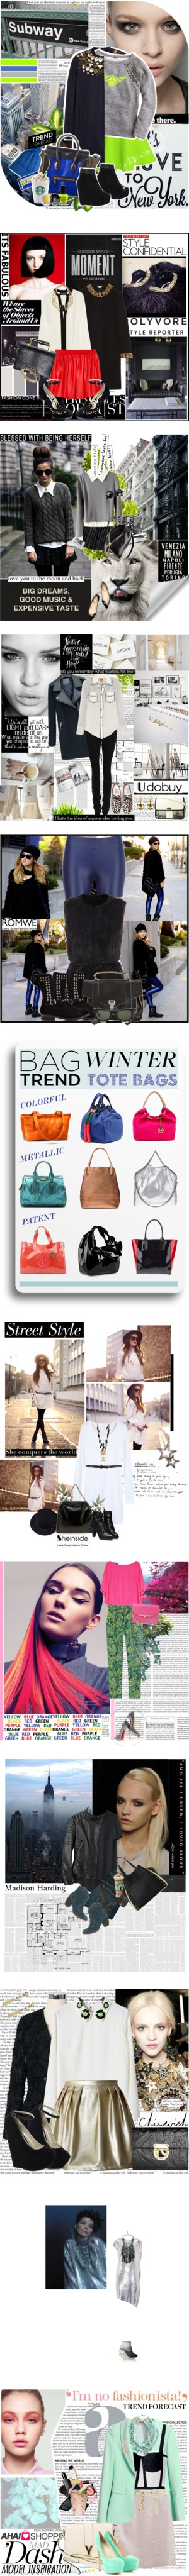 """Top Sets for Jan 13th, 2013"" by polyvore ❤ liked on Polyvore"